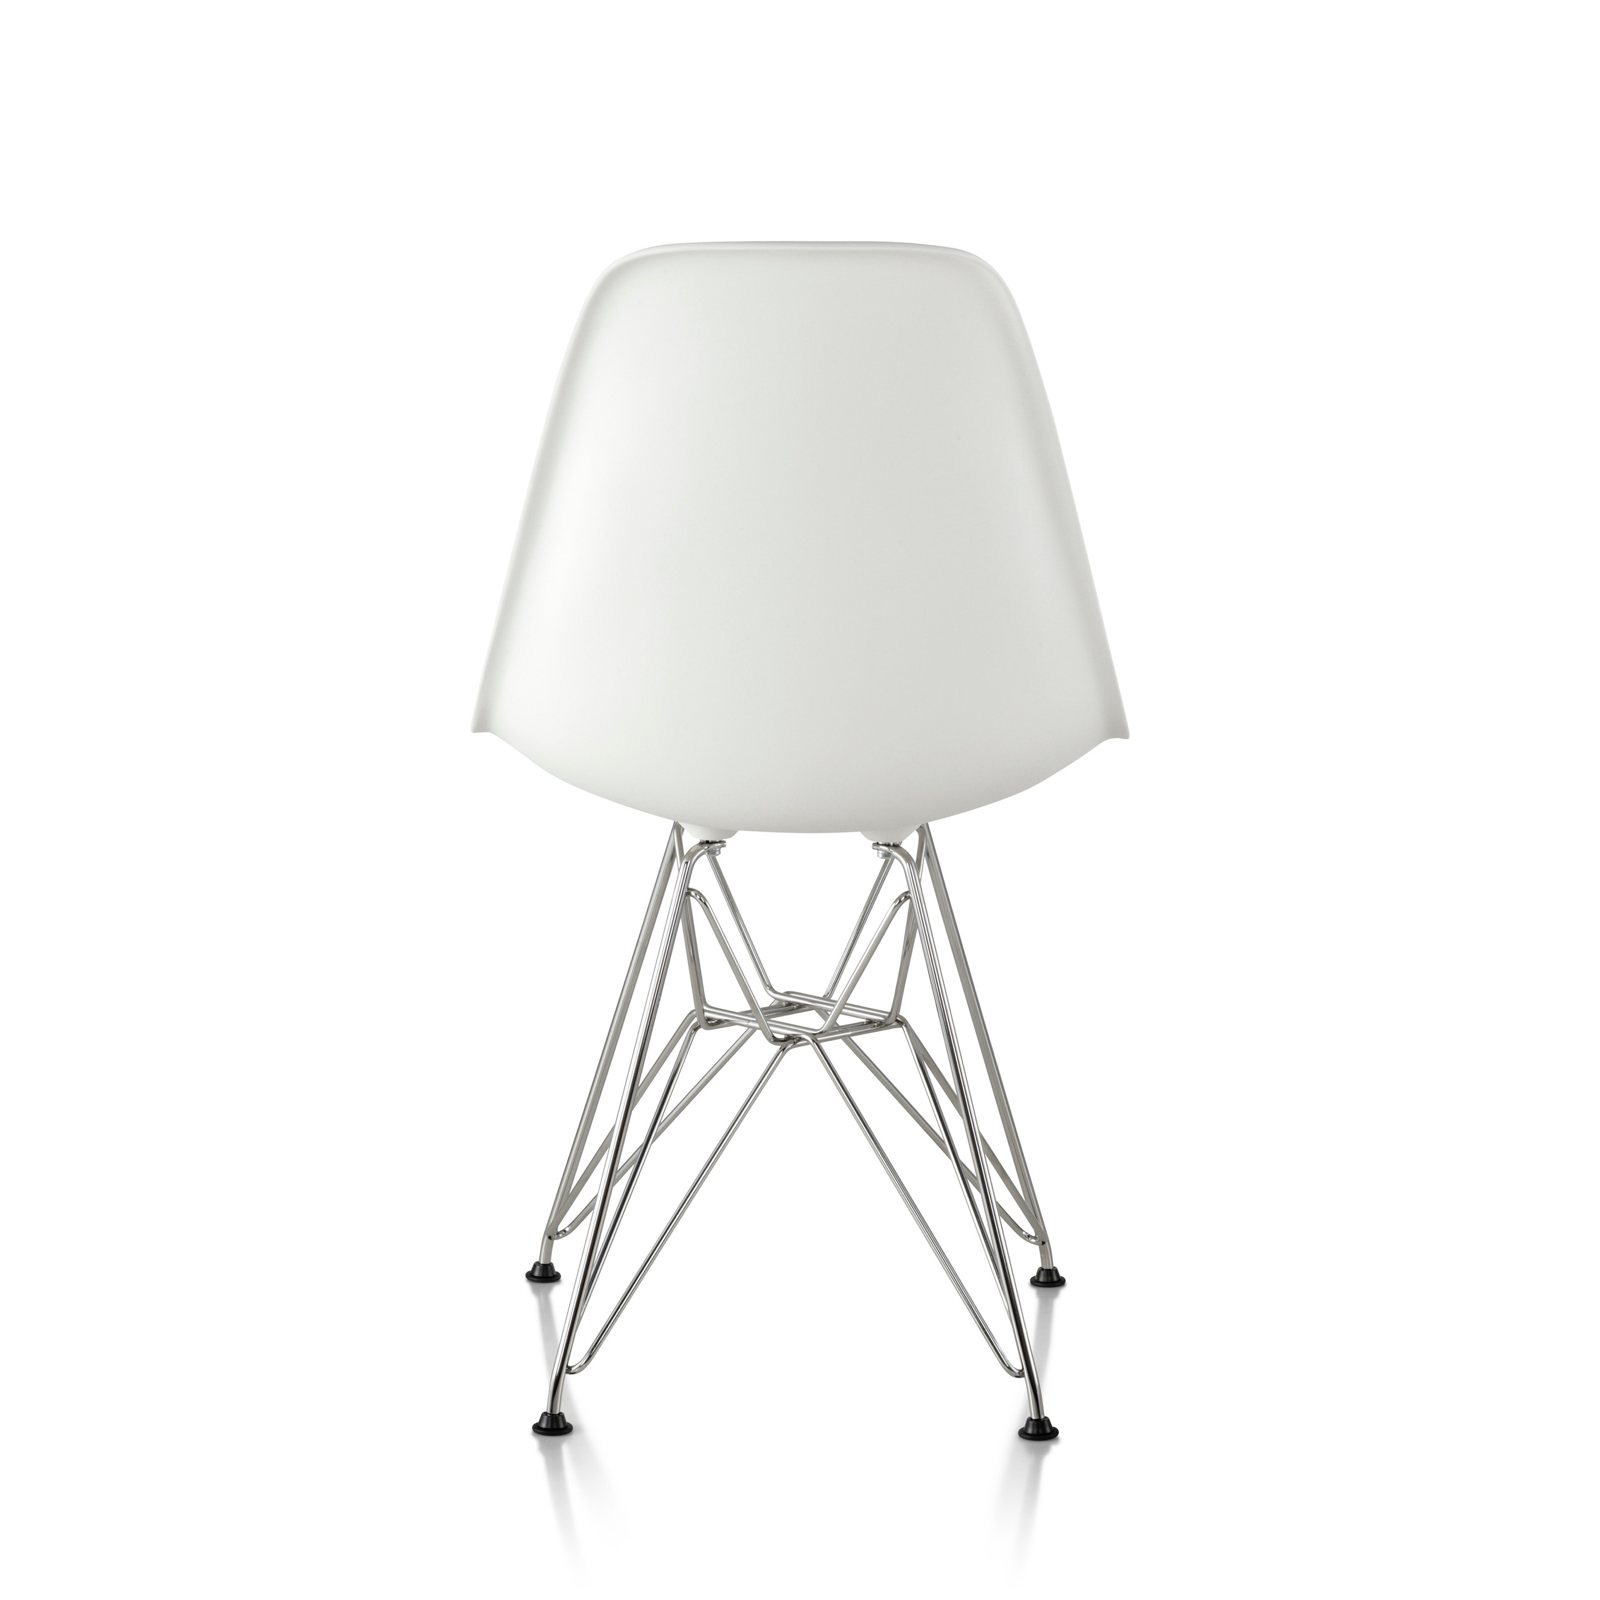 eames molded plastic side chair wire base by charles ray. Black Bedroom Furniture Sets. Home Design Ideas